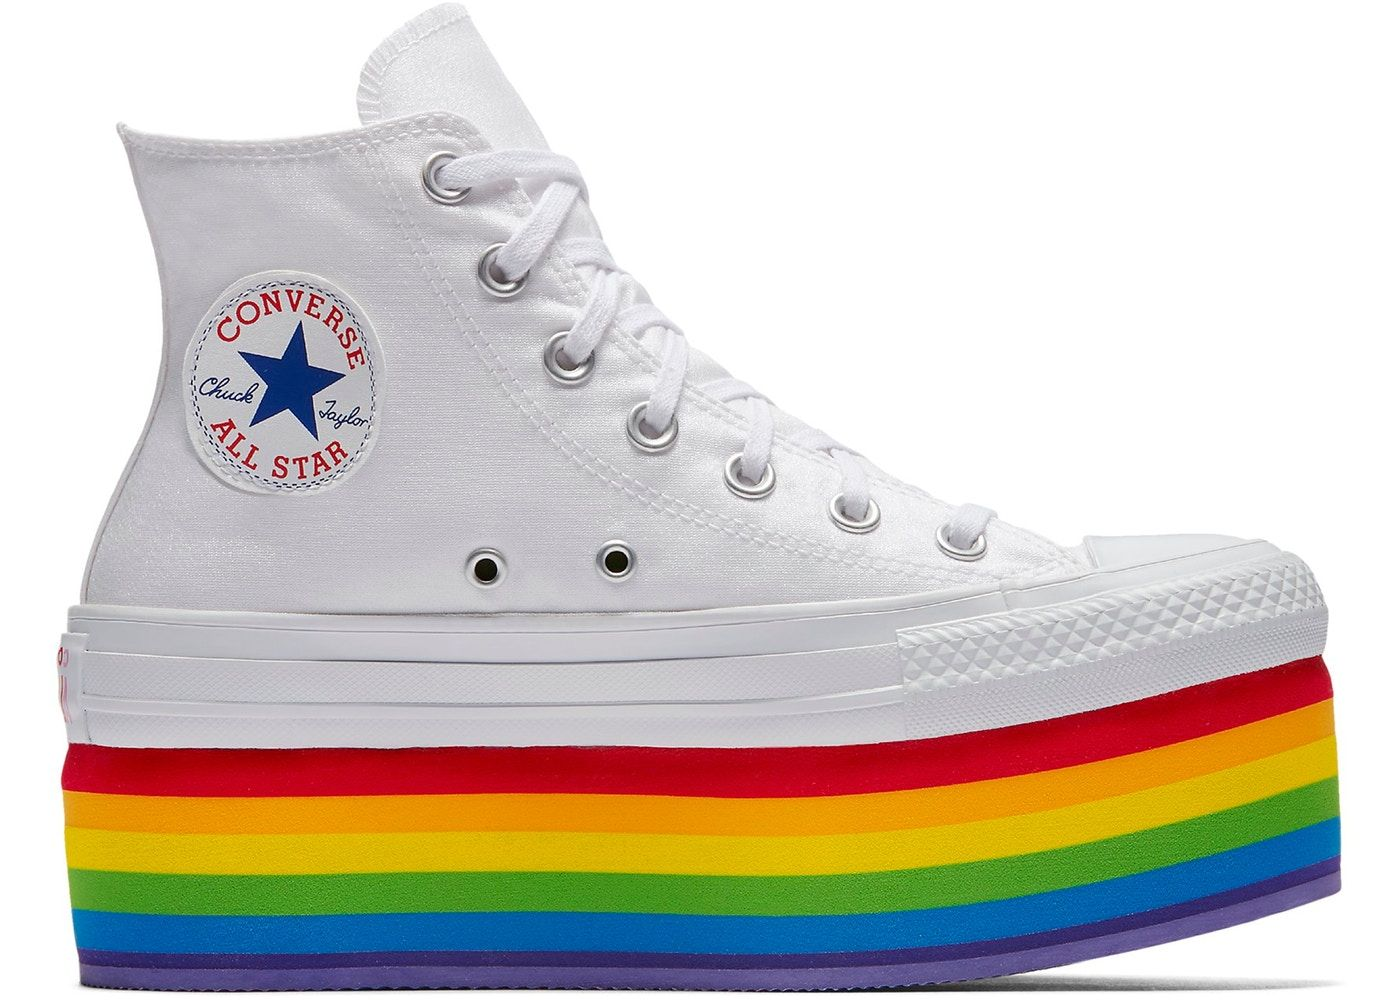 Converse Chuck Taylor All Star Platform High Miley Cyrus